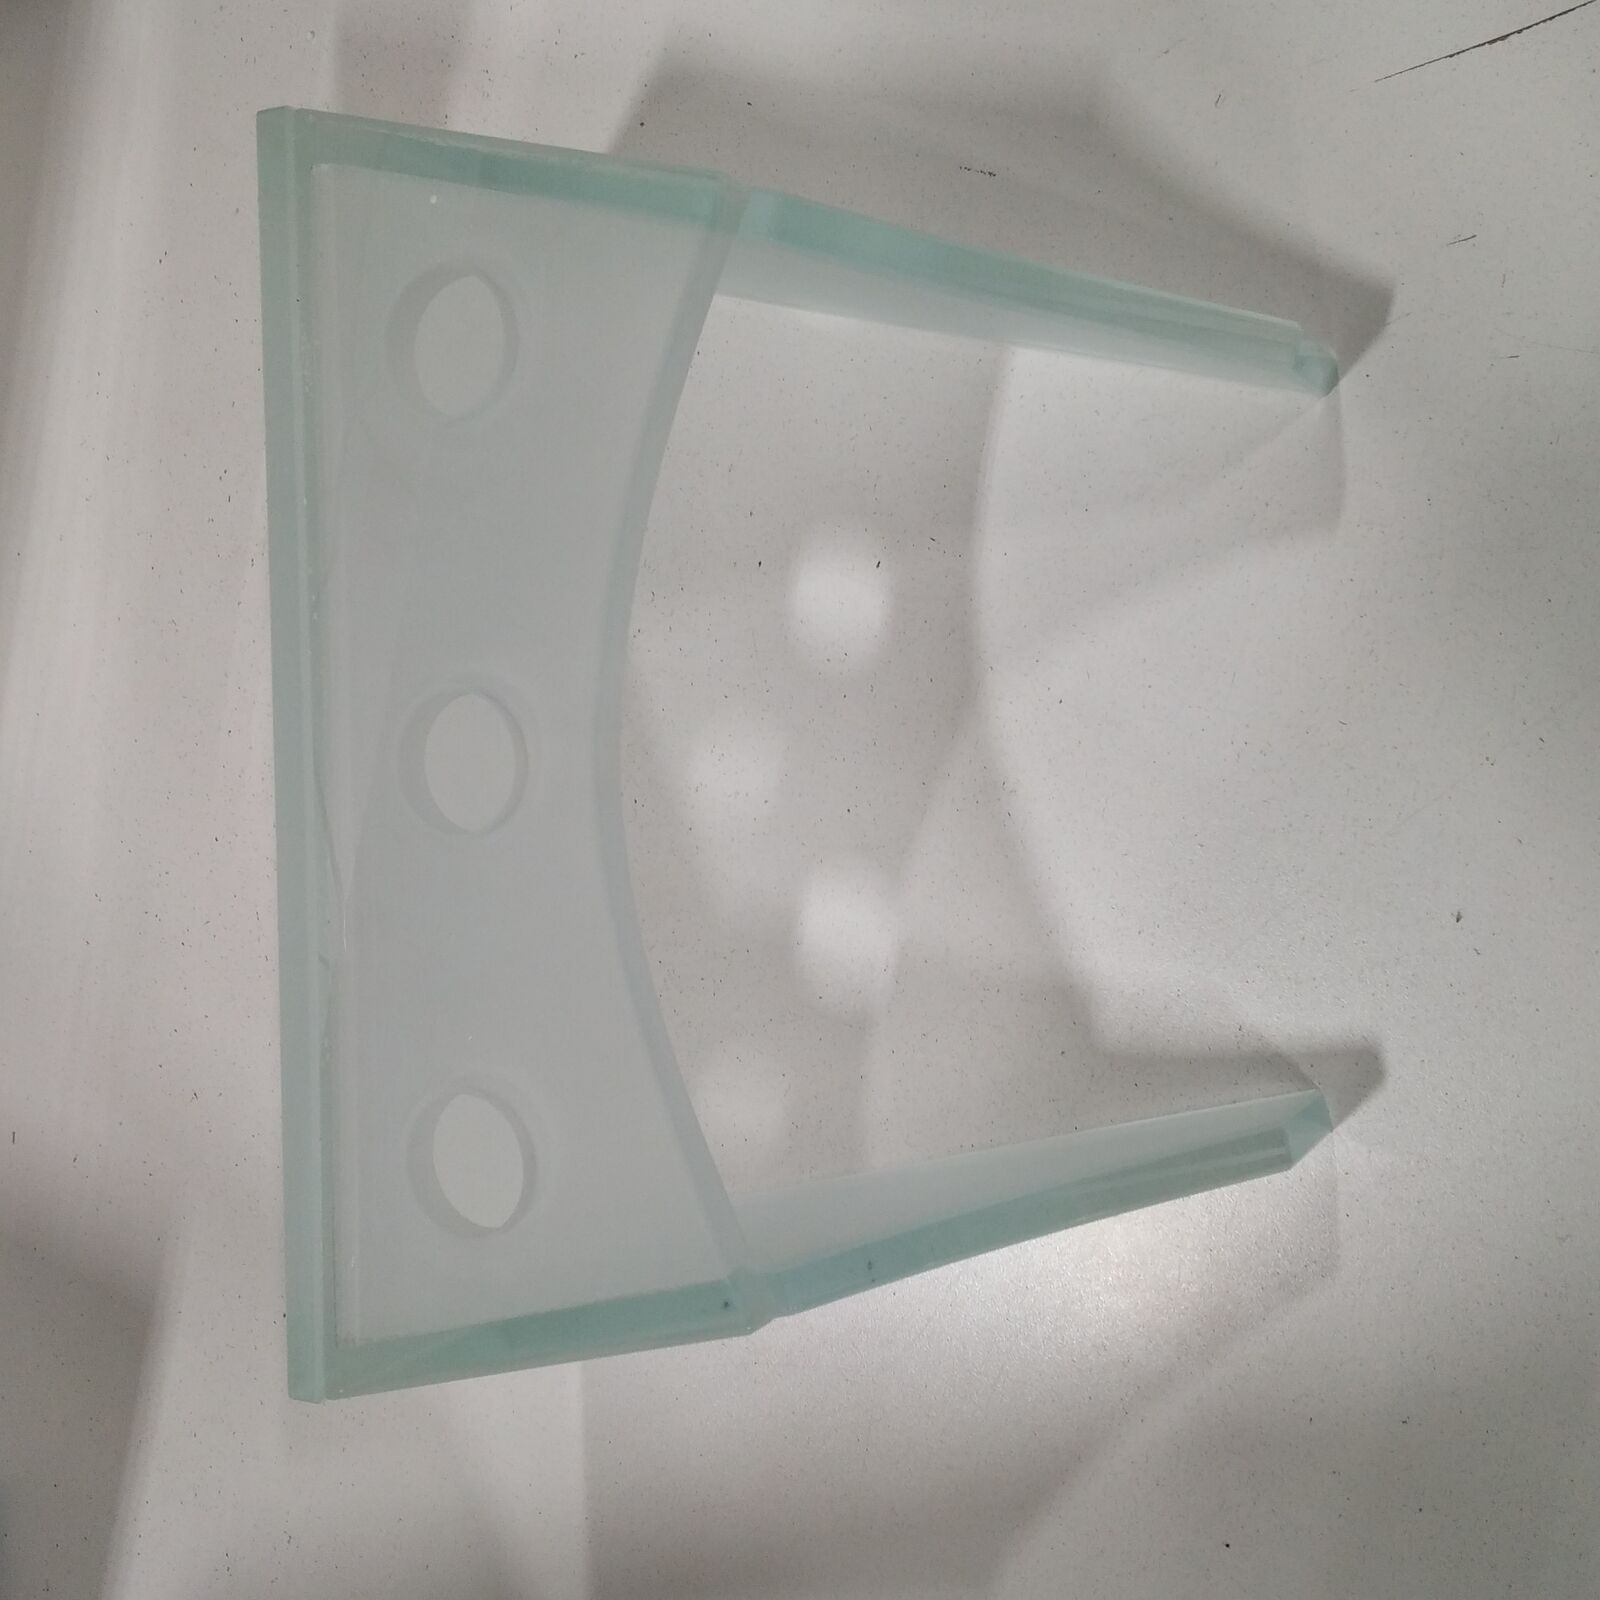 DECOLAV 9400T-CR Faucet Stand with Tempered Frosted Glass Crystal